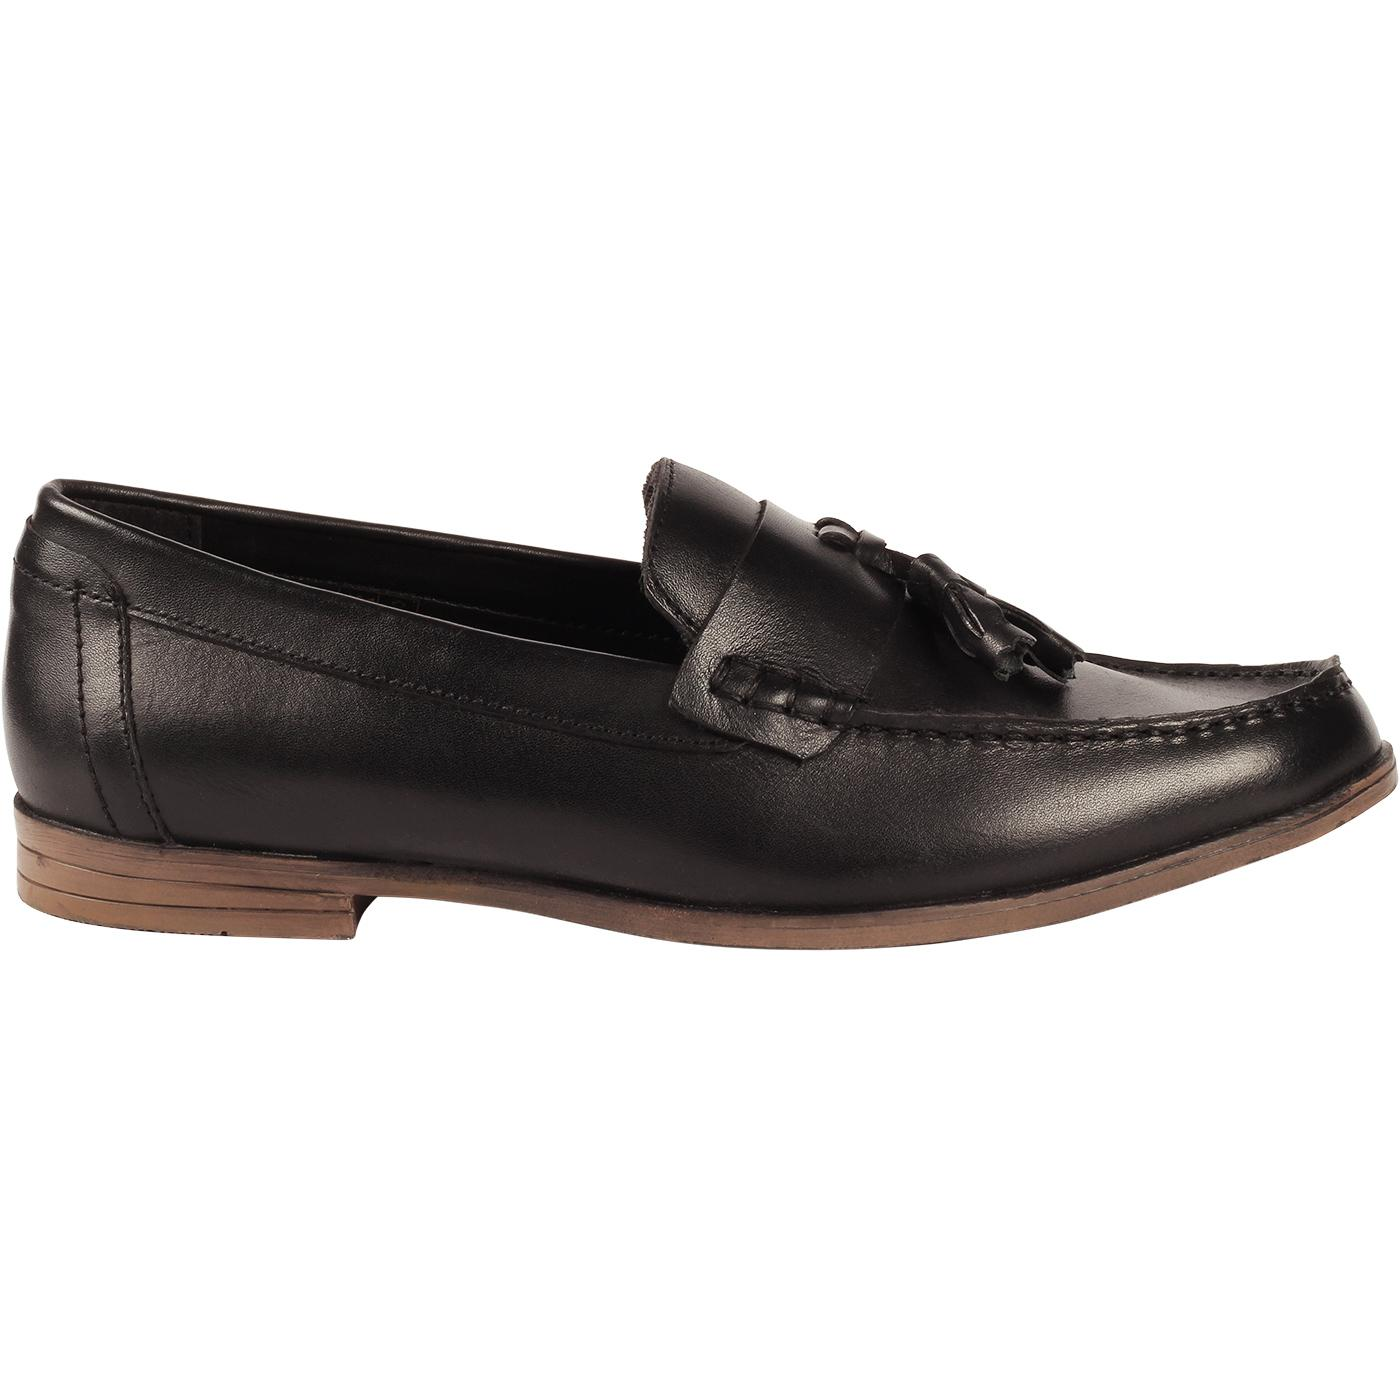 LAMBRETTA Men's Retro Mod Tassel Loafers (Black)